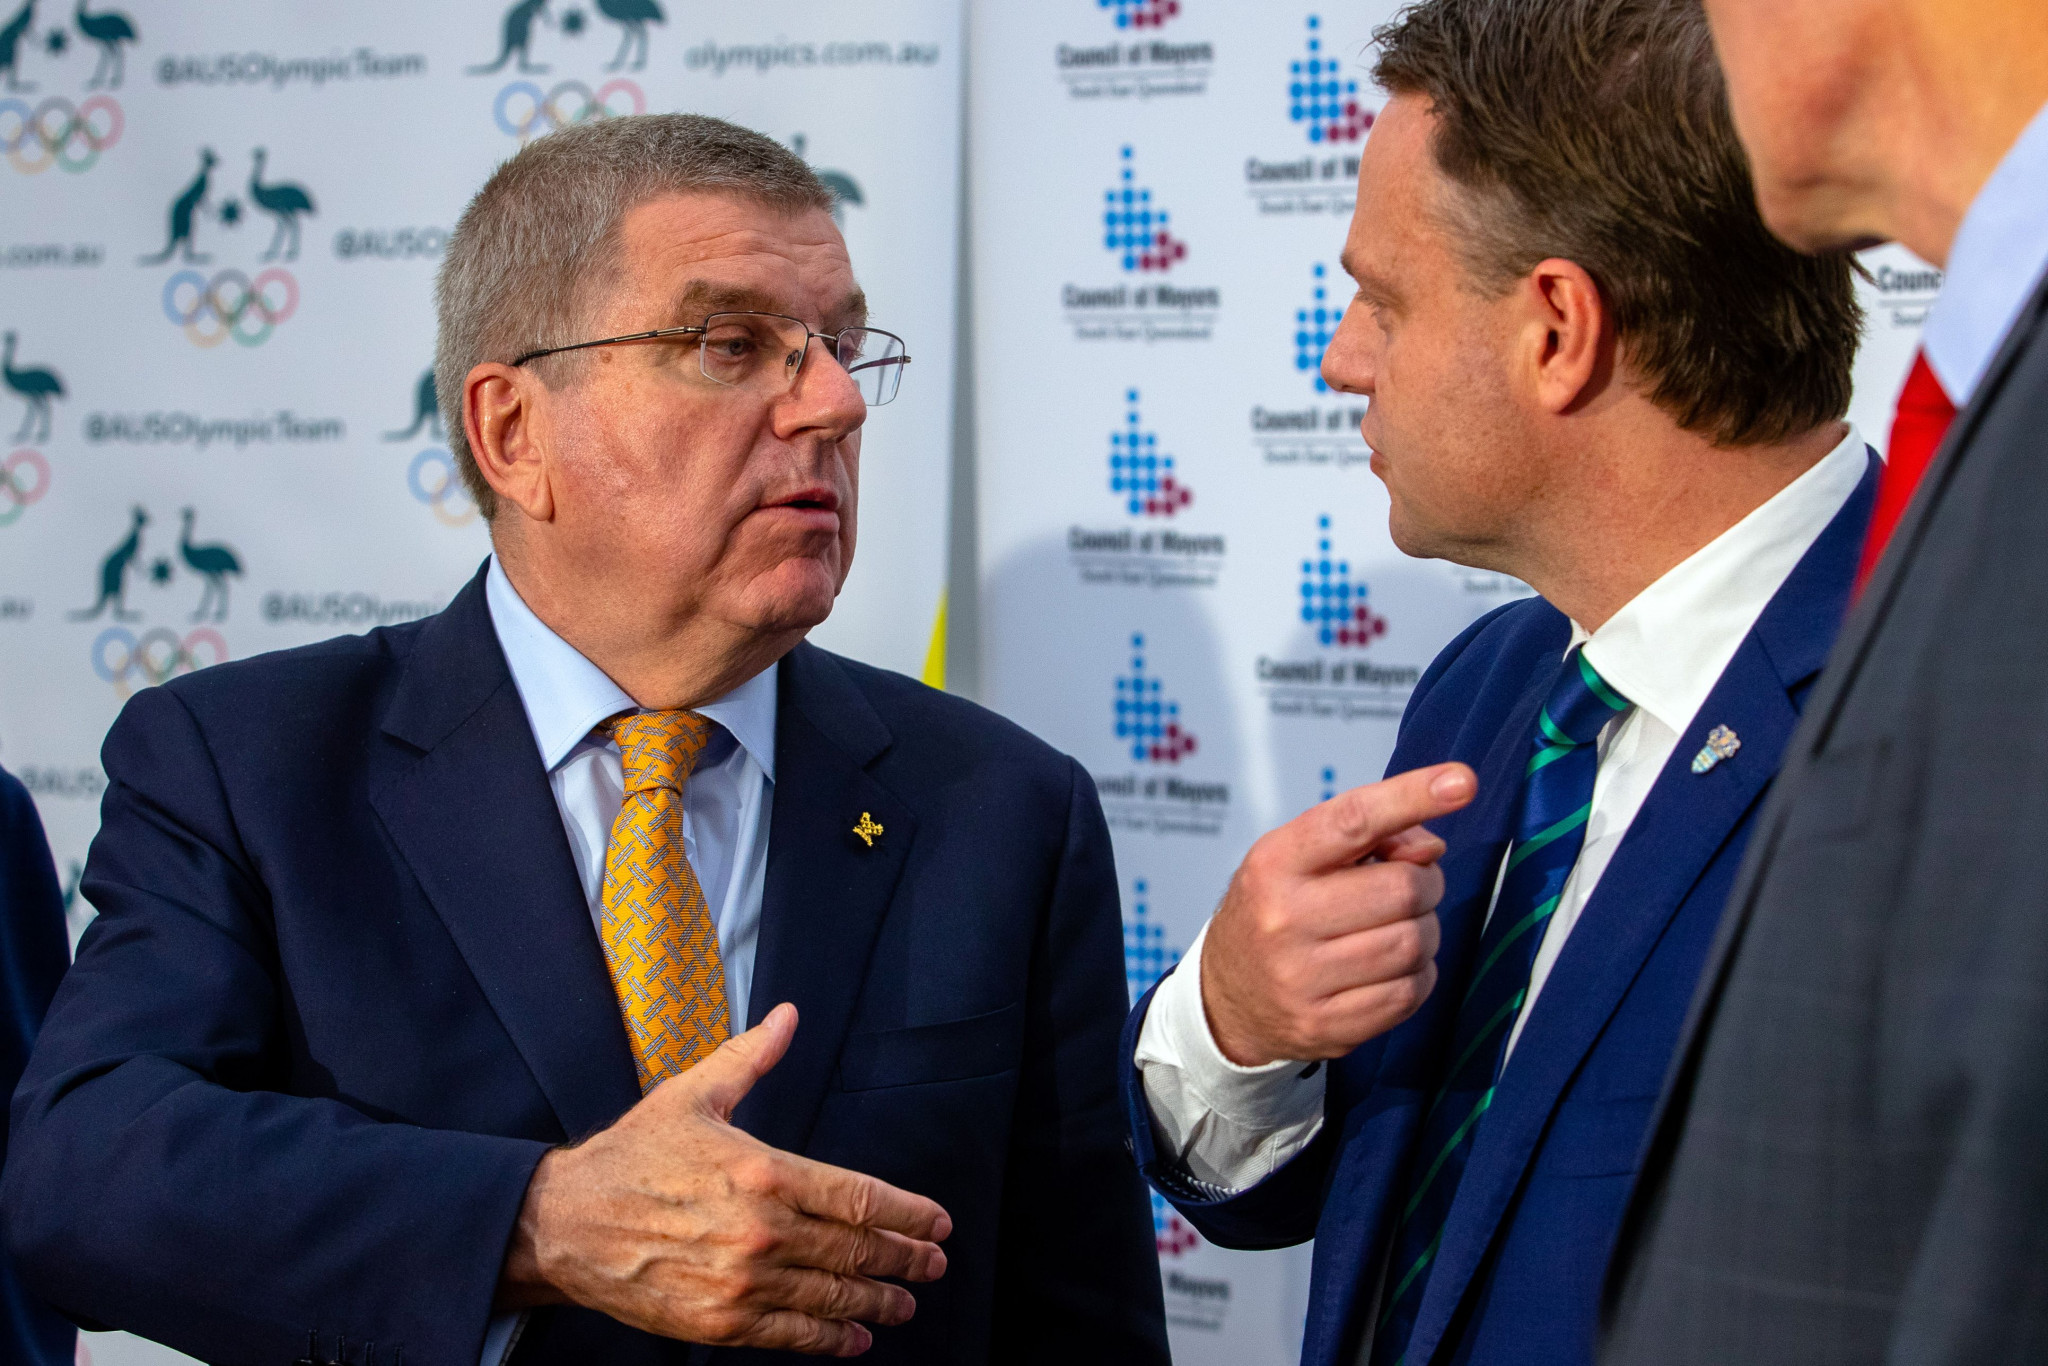 IOC President Thomas Bach has spoken favourably about Queensland's possible 2032 bid ©Getty Images